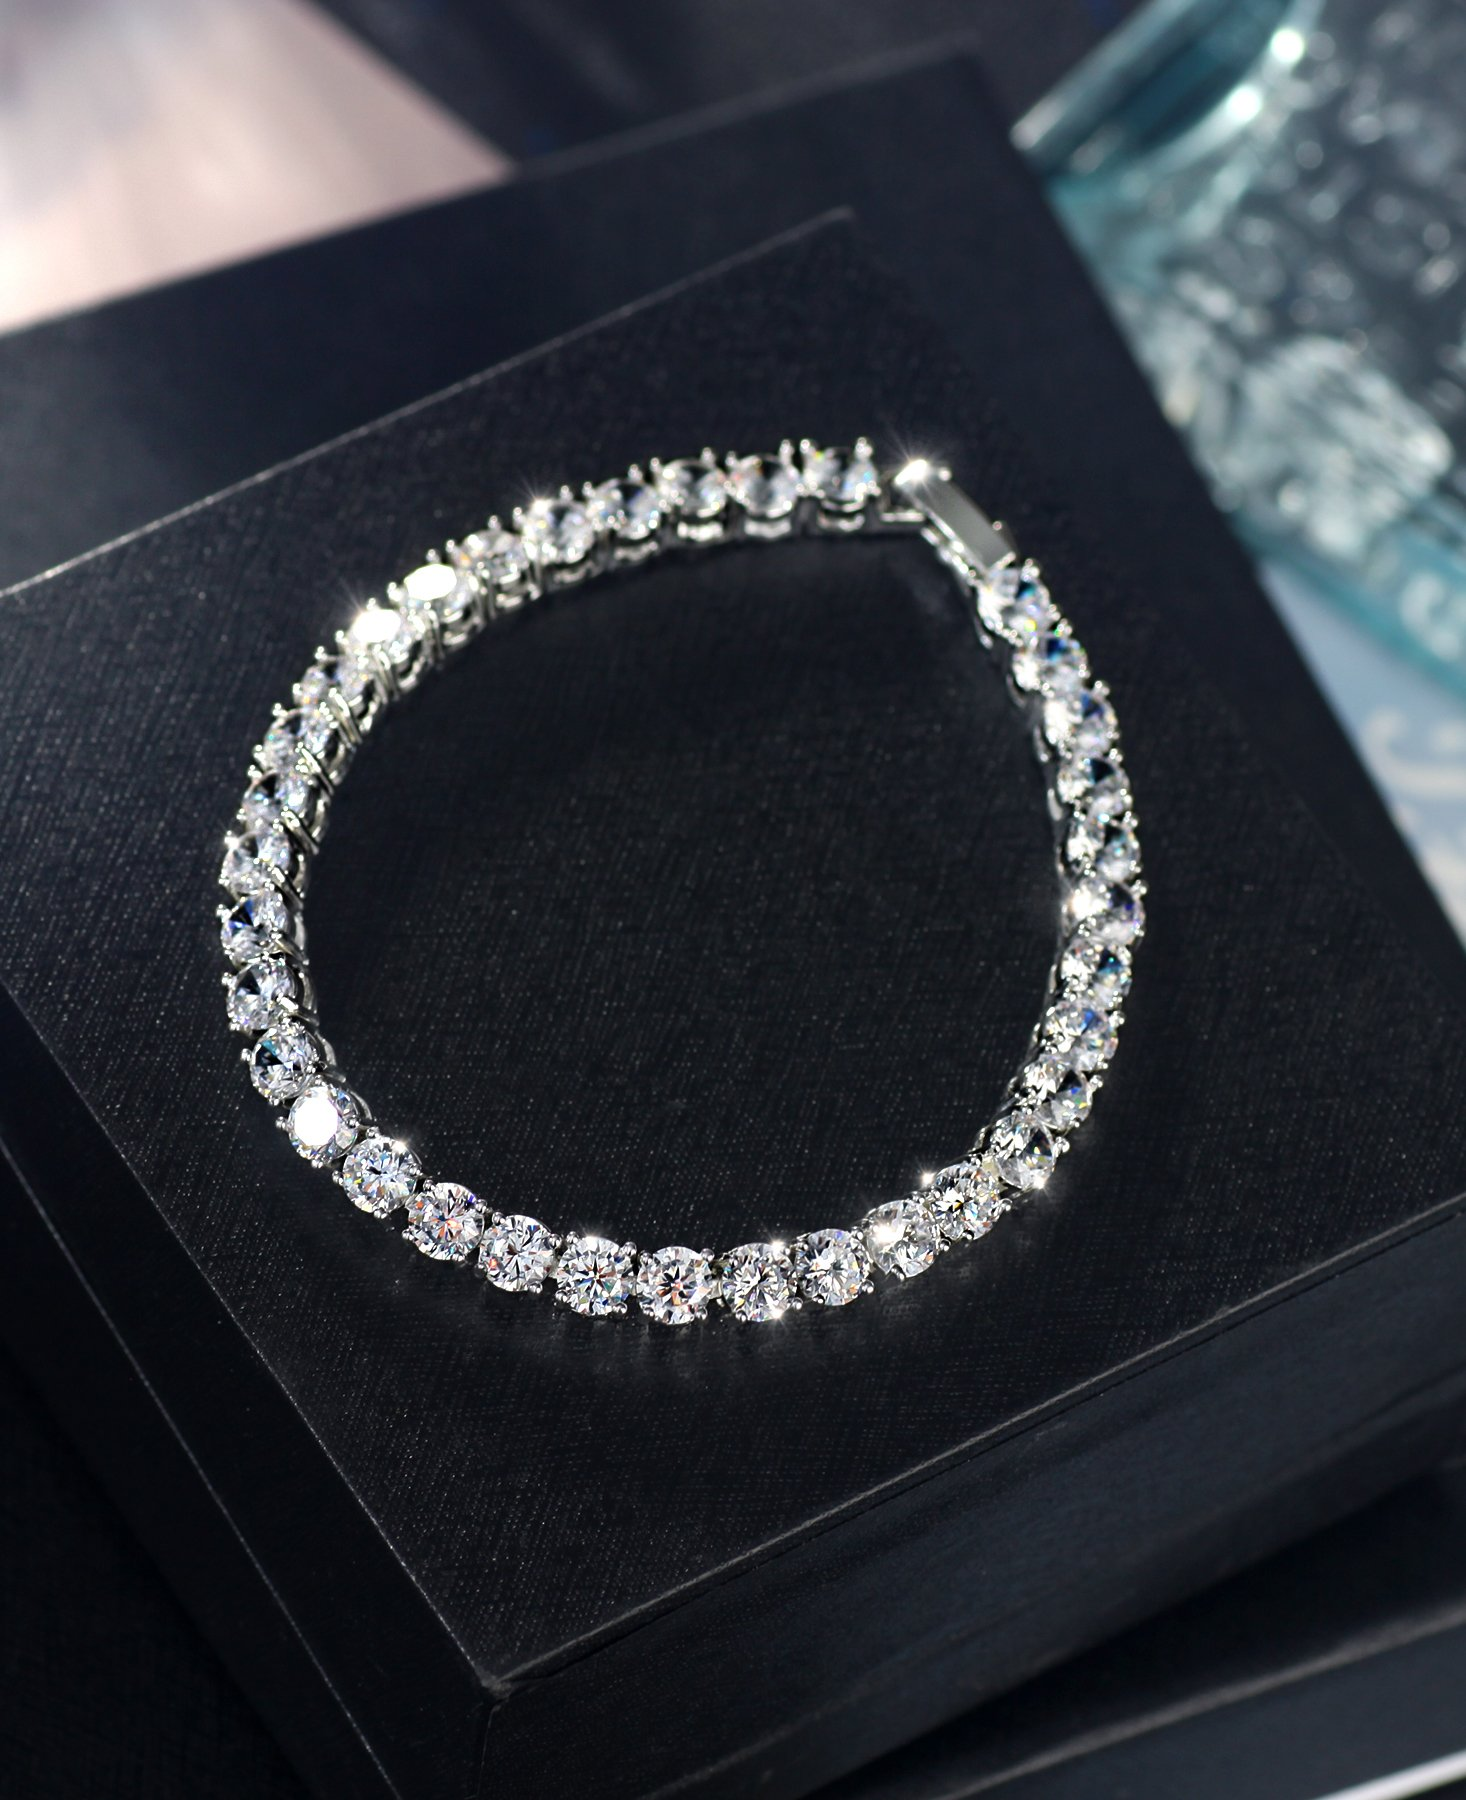 Neoglory Jewelry S925 Silver White Round-Cut Cubic Zirconia Classic Tennis Bracelet 7.7Inch by Neoglory (Image #6)